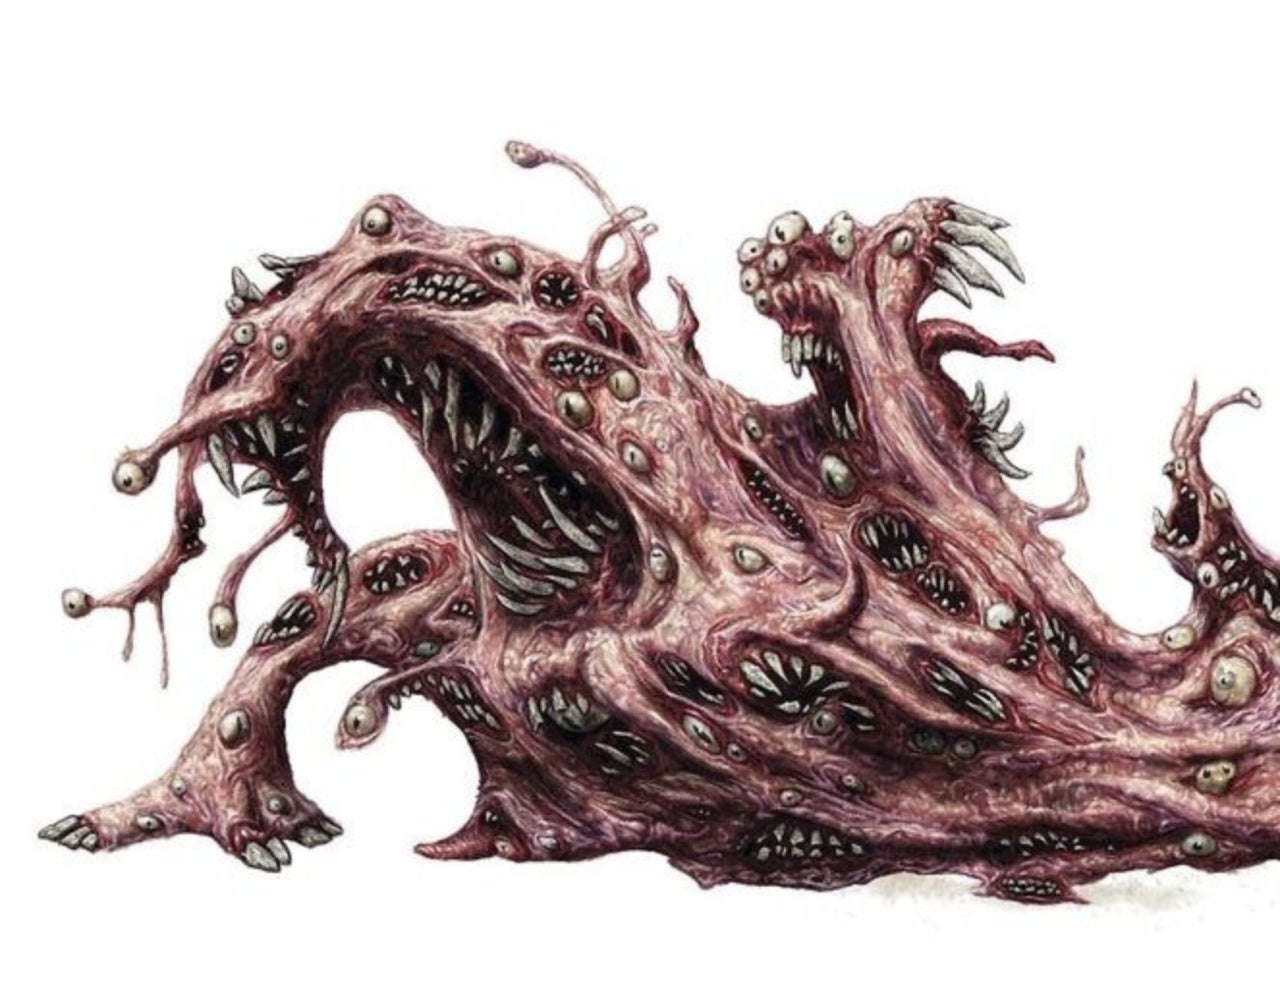 What 'Dungeons & Dragons' Creature Will 'Stranger Things' Name Its New Monster After?